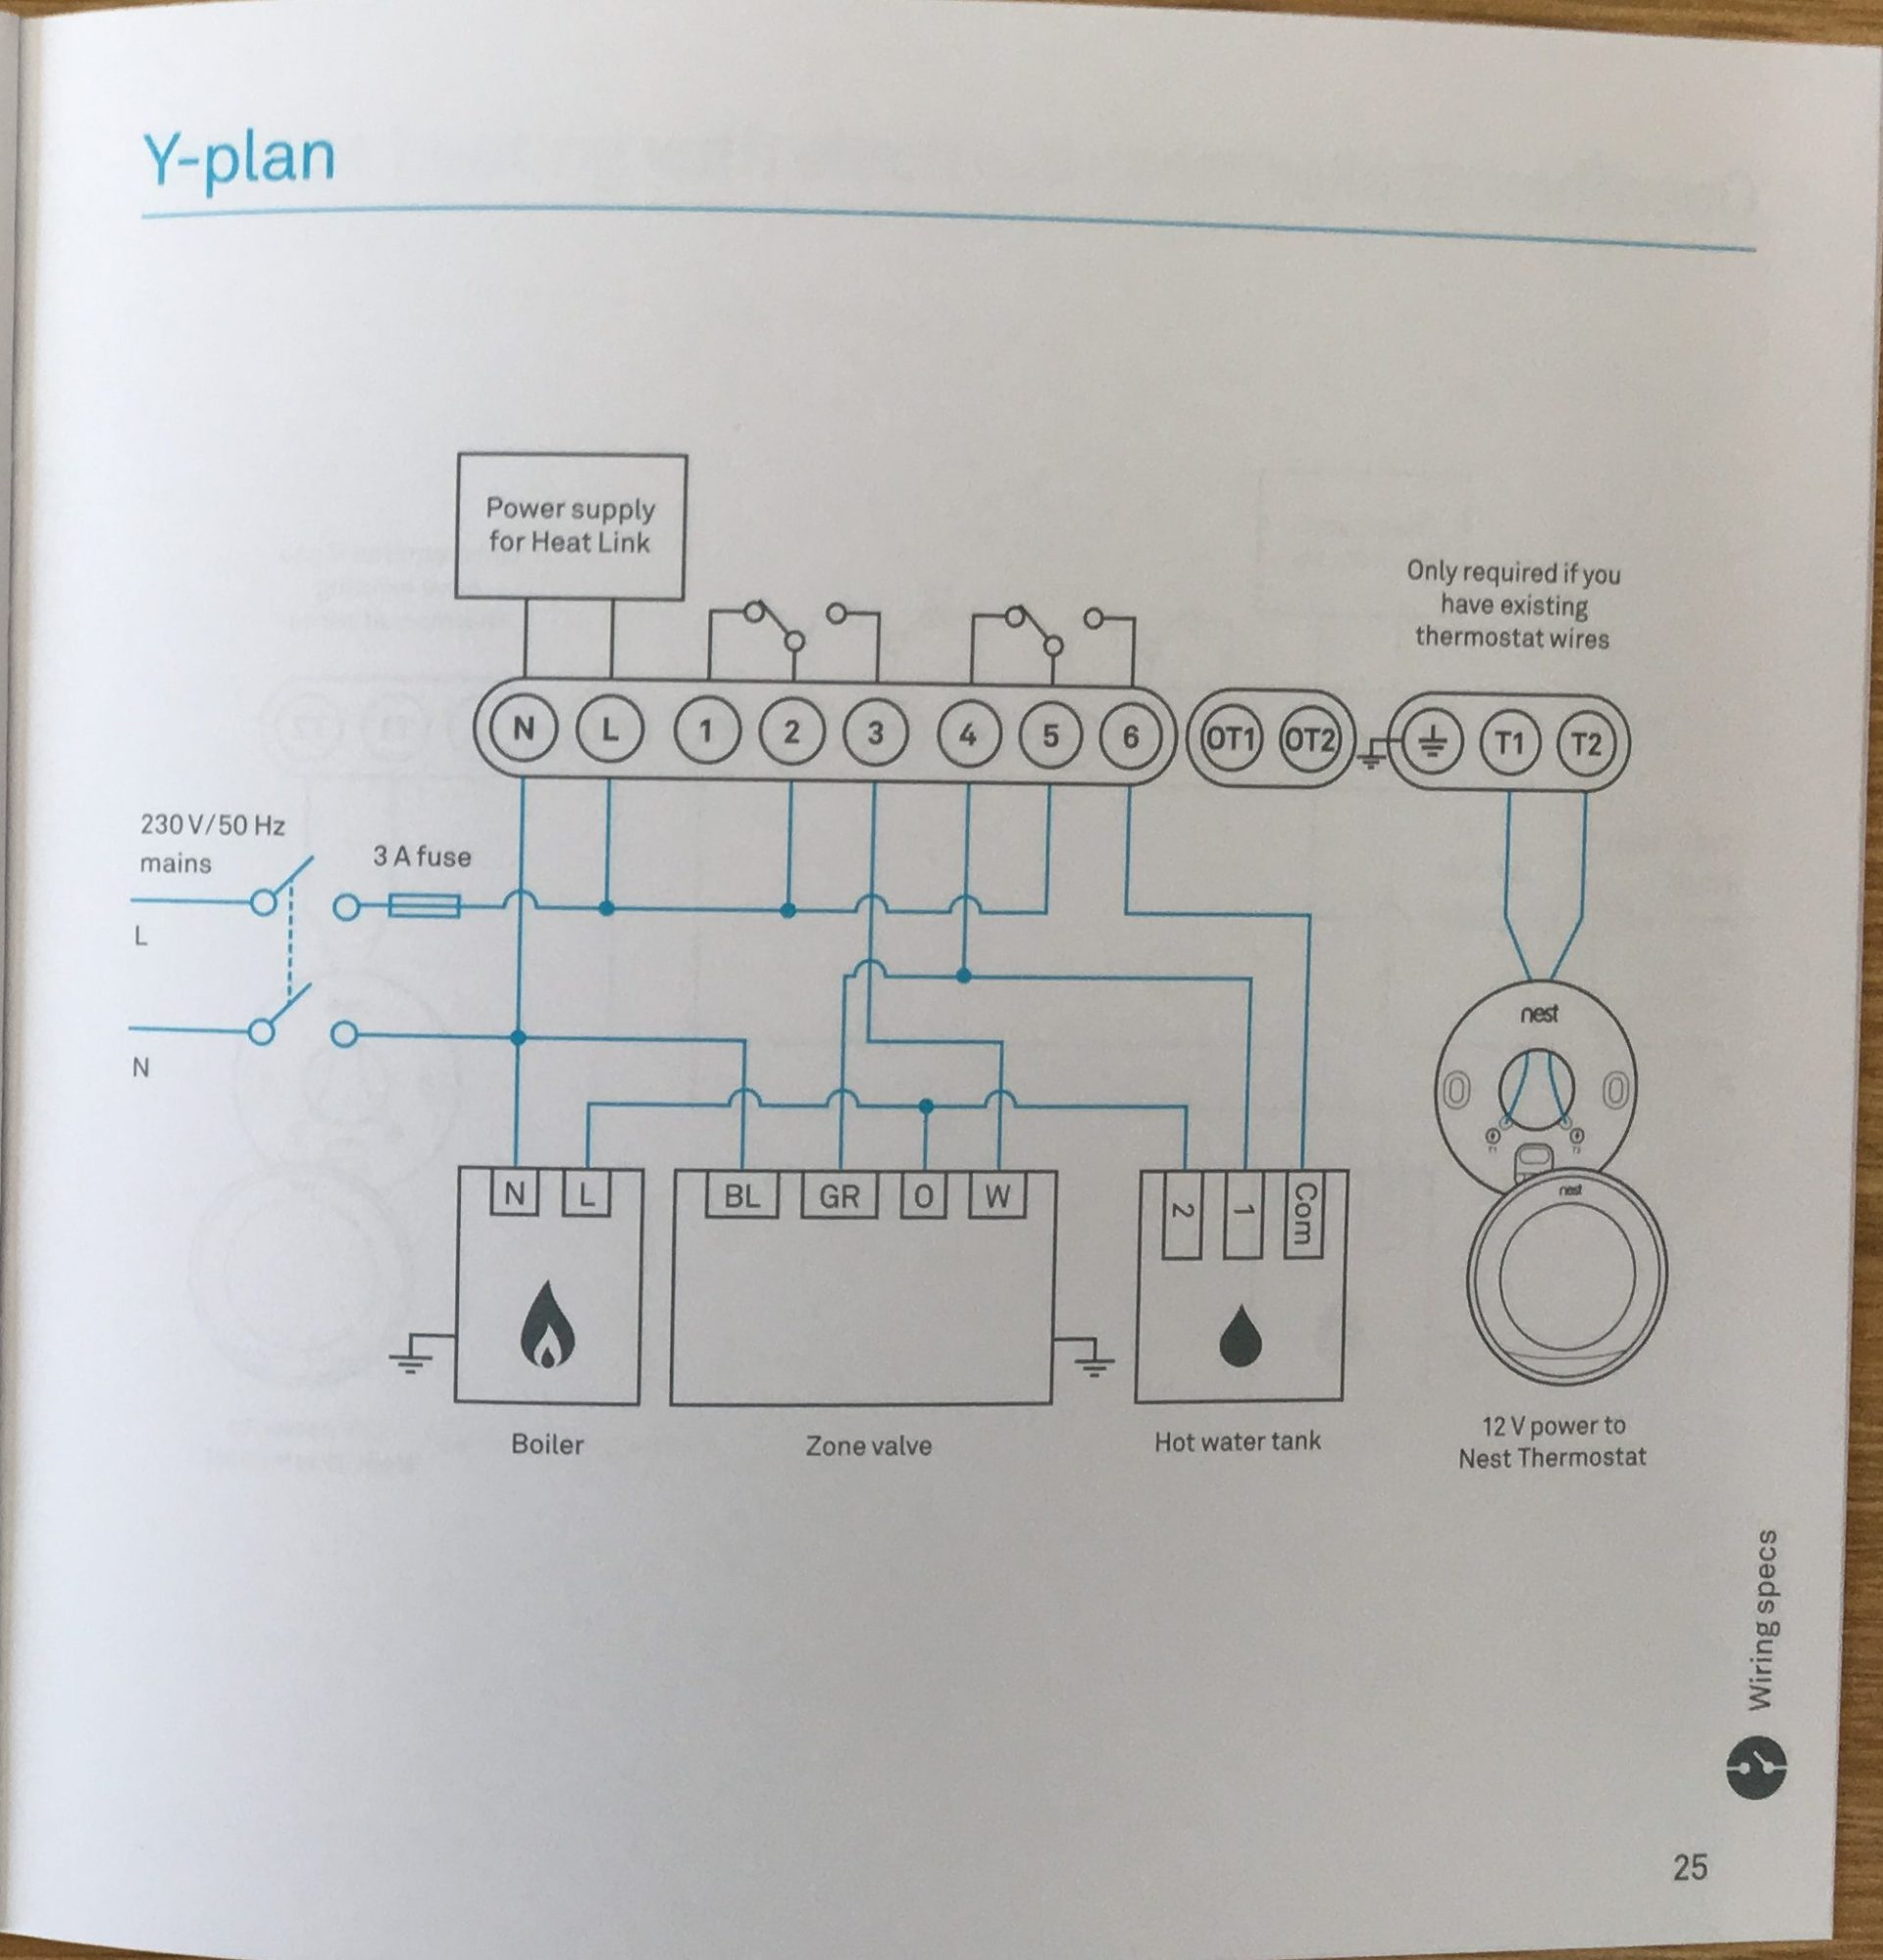 How To Install The Nest Learning Thermostat (3Rd Gen) In A Y-Plan - Nest Multi Zone Wiring Diagram